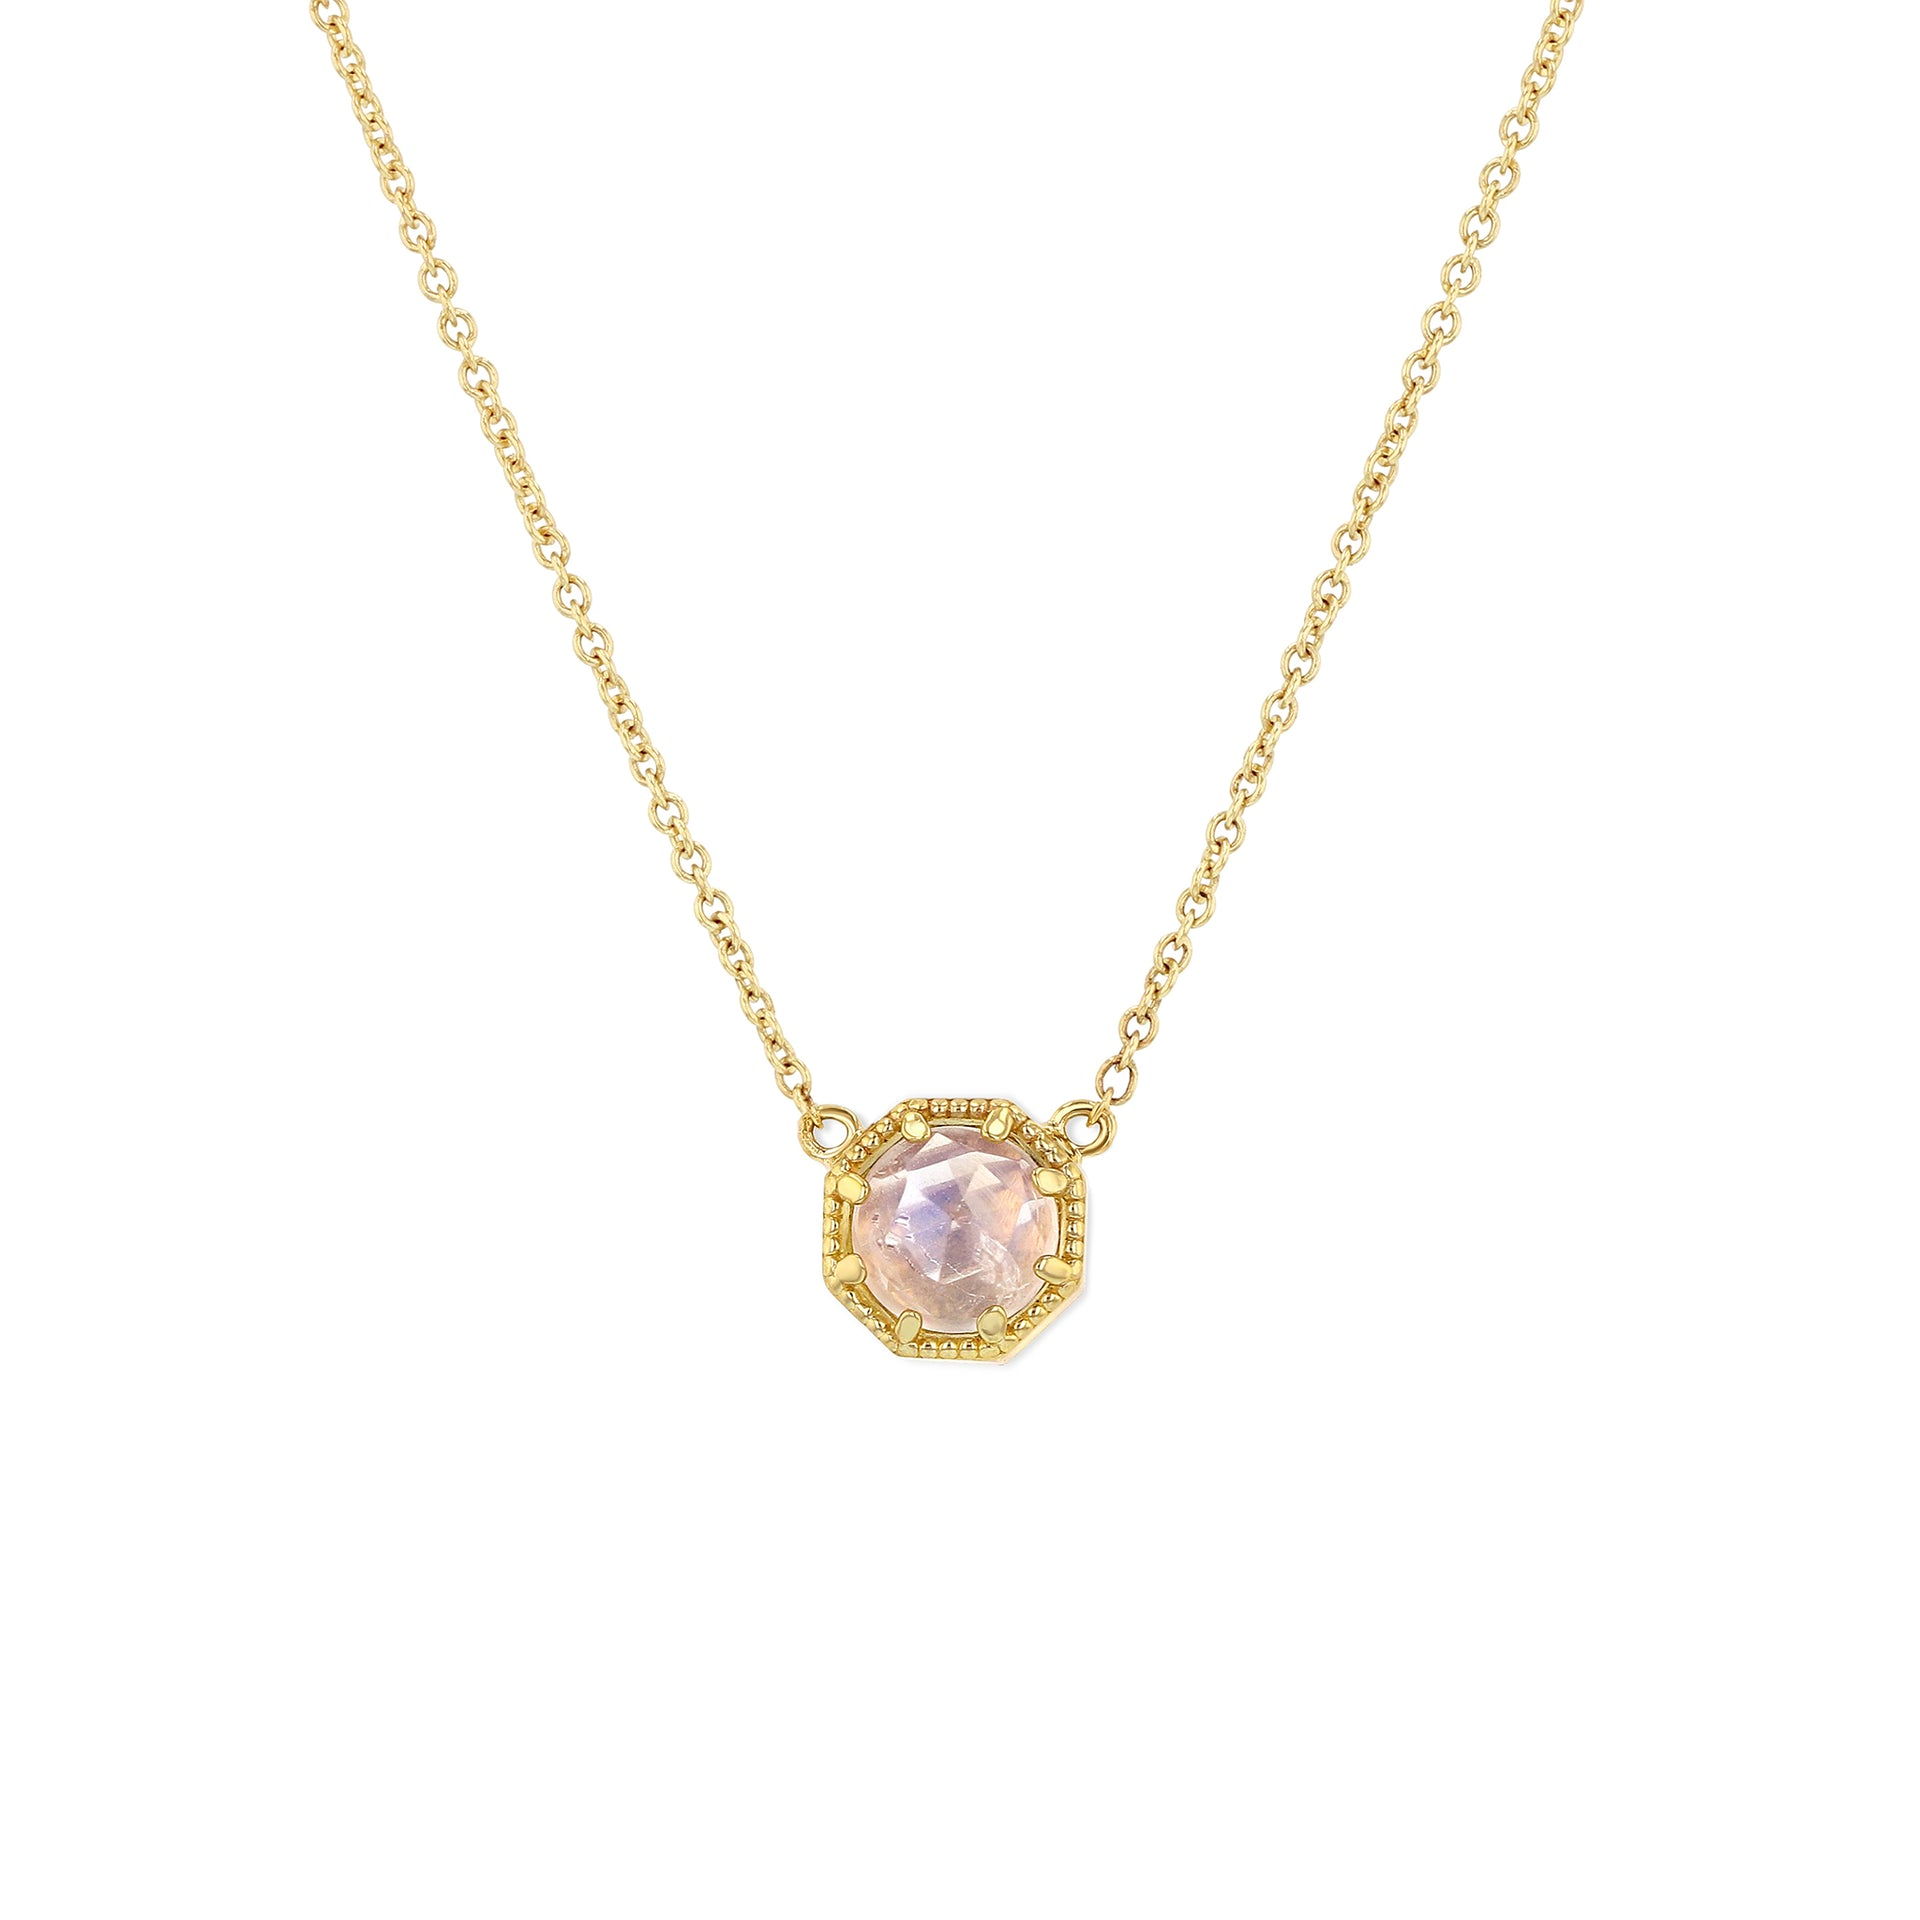 Crown Bezel Moonstone Necklace - RTS